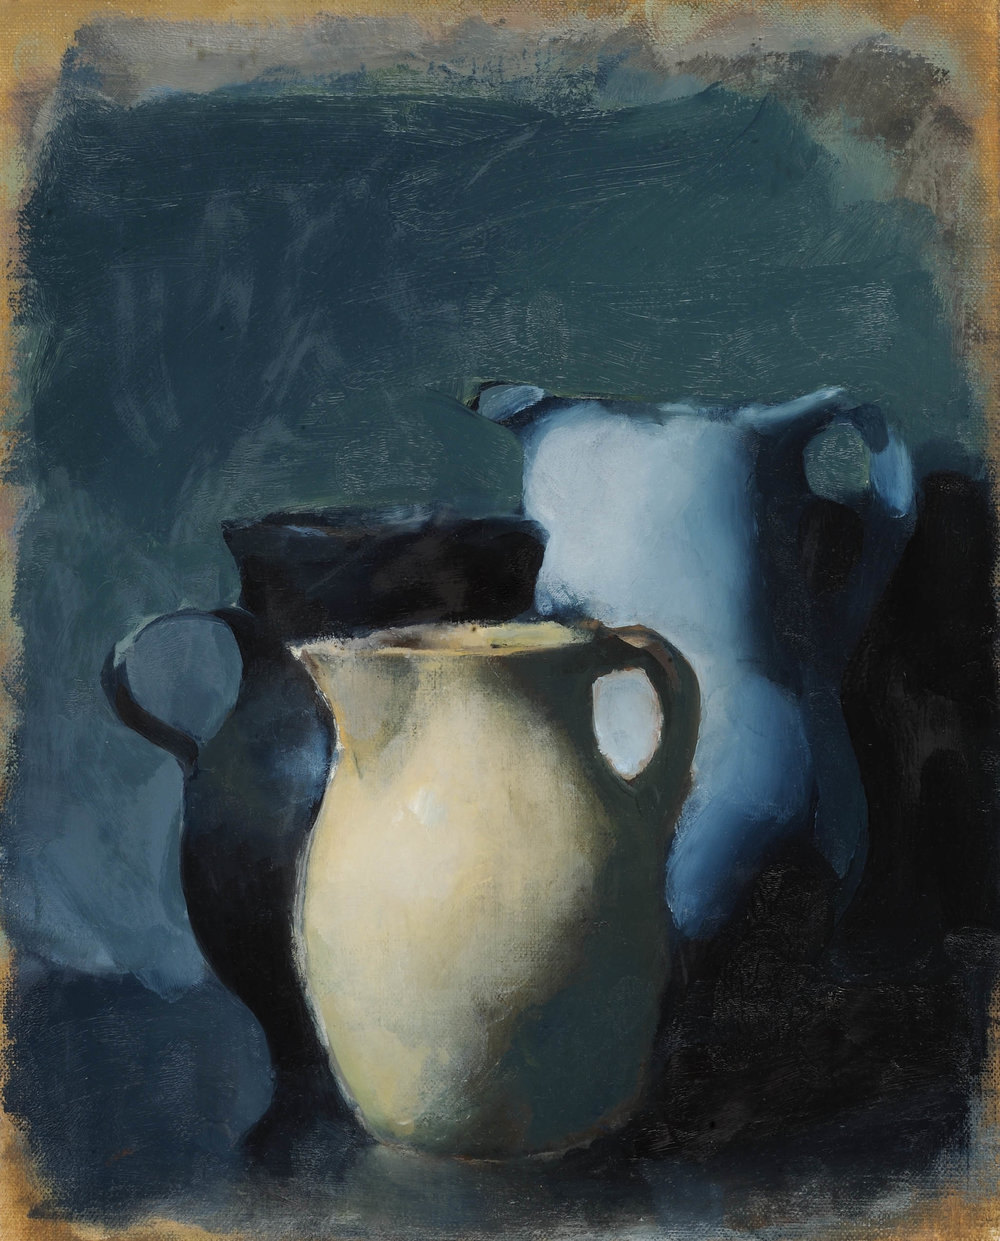 Pitchers (743), 2017